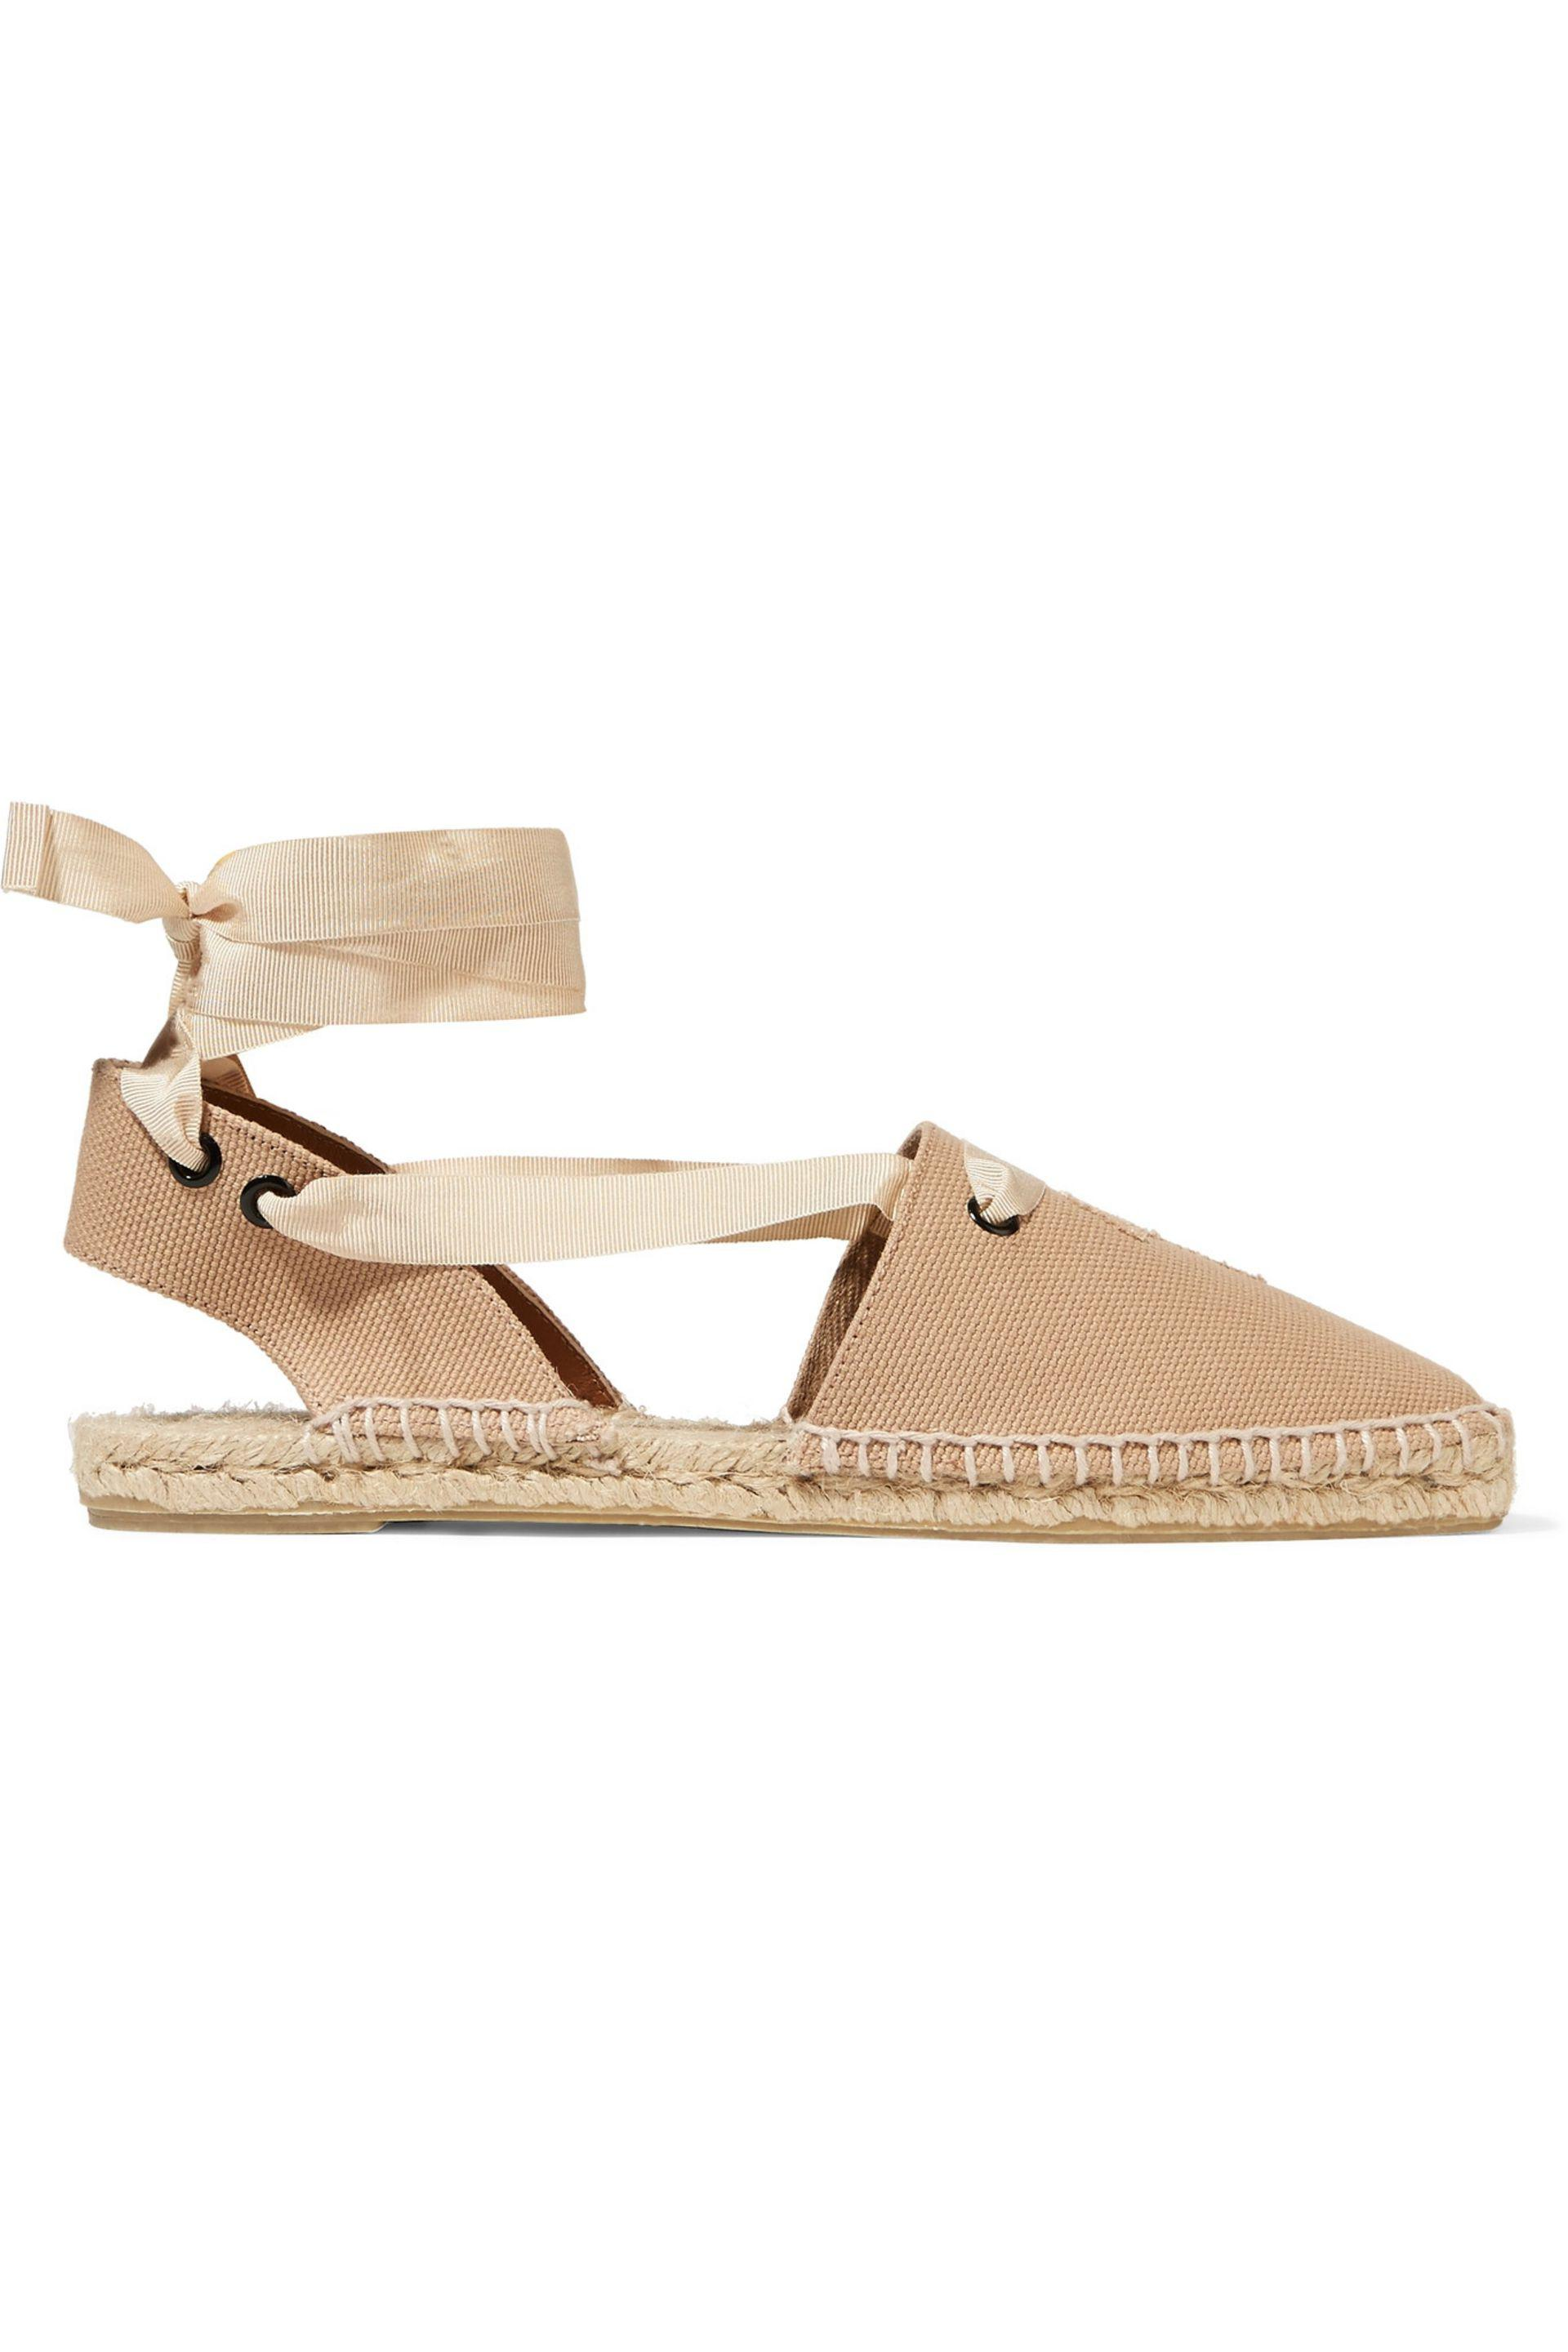 FOOTWEAR - Espadrilles Tomas Maier Sale With Mastercard The Cheapest Cheap Price Sast Cheap Online CmWfB42Idf